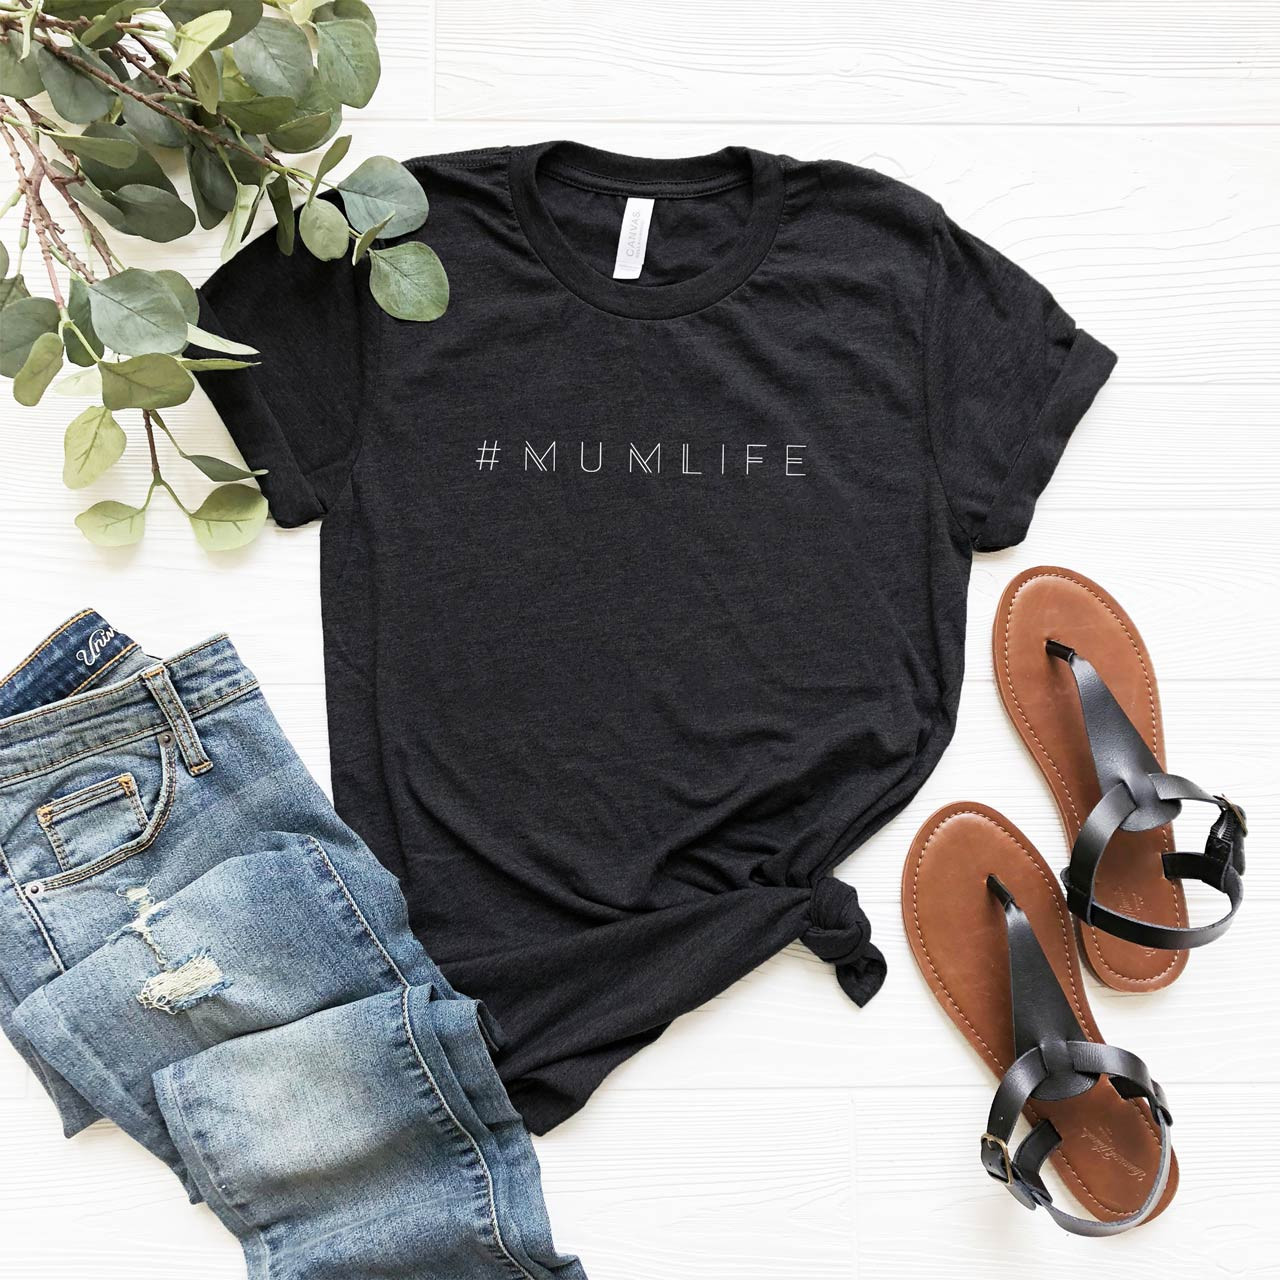 #MUMLIFE Vintage T-Shirt (White on Black) from The Printed Home